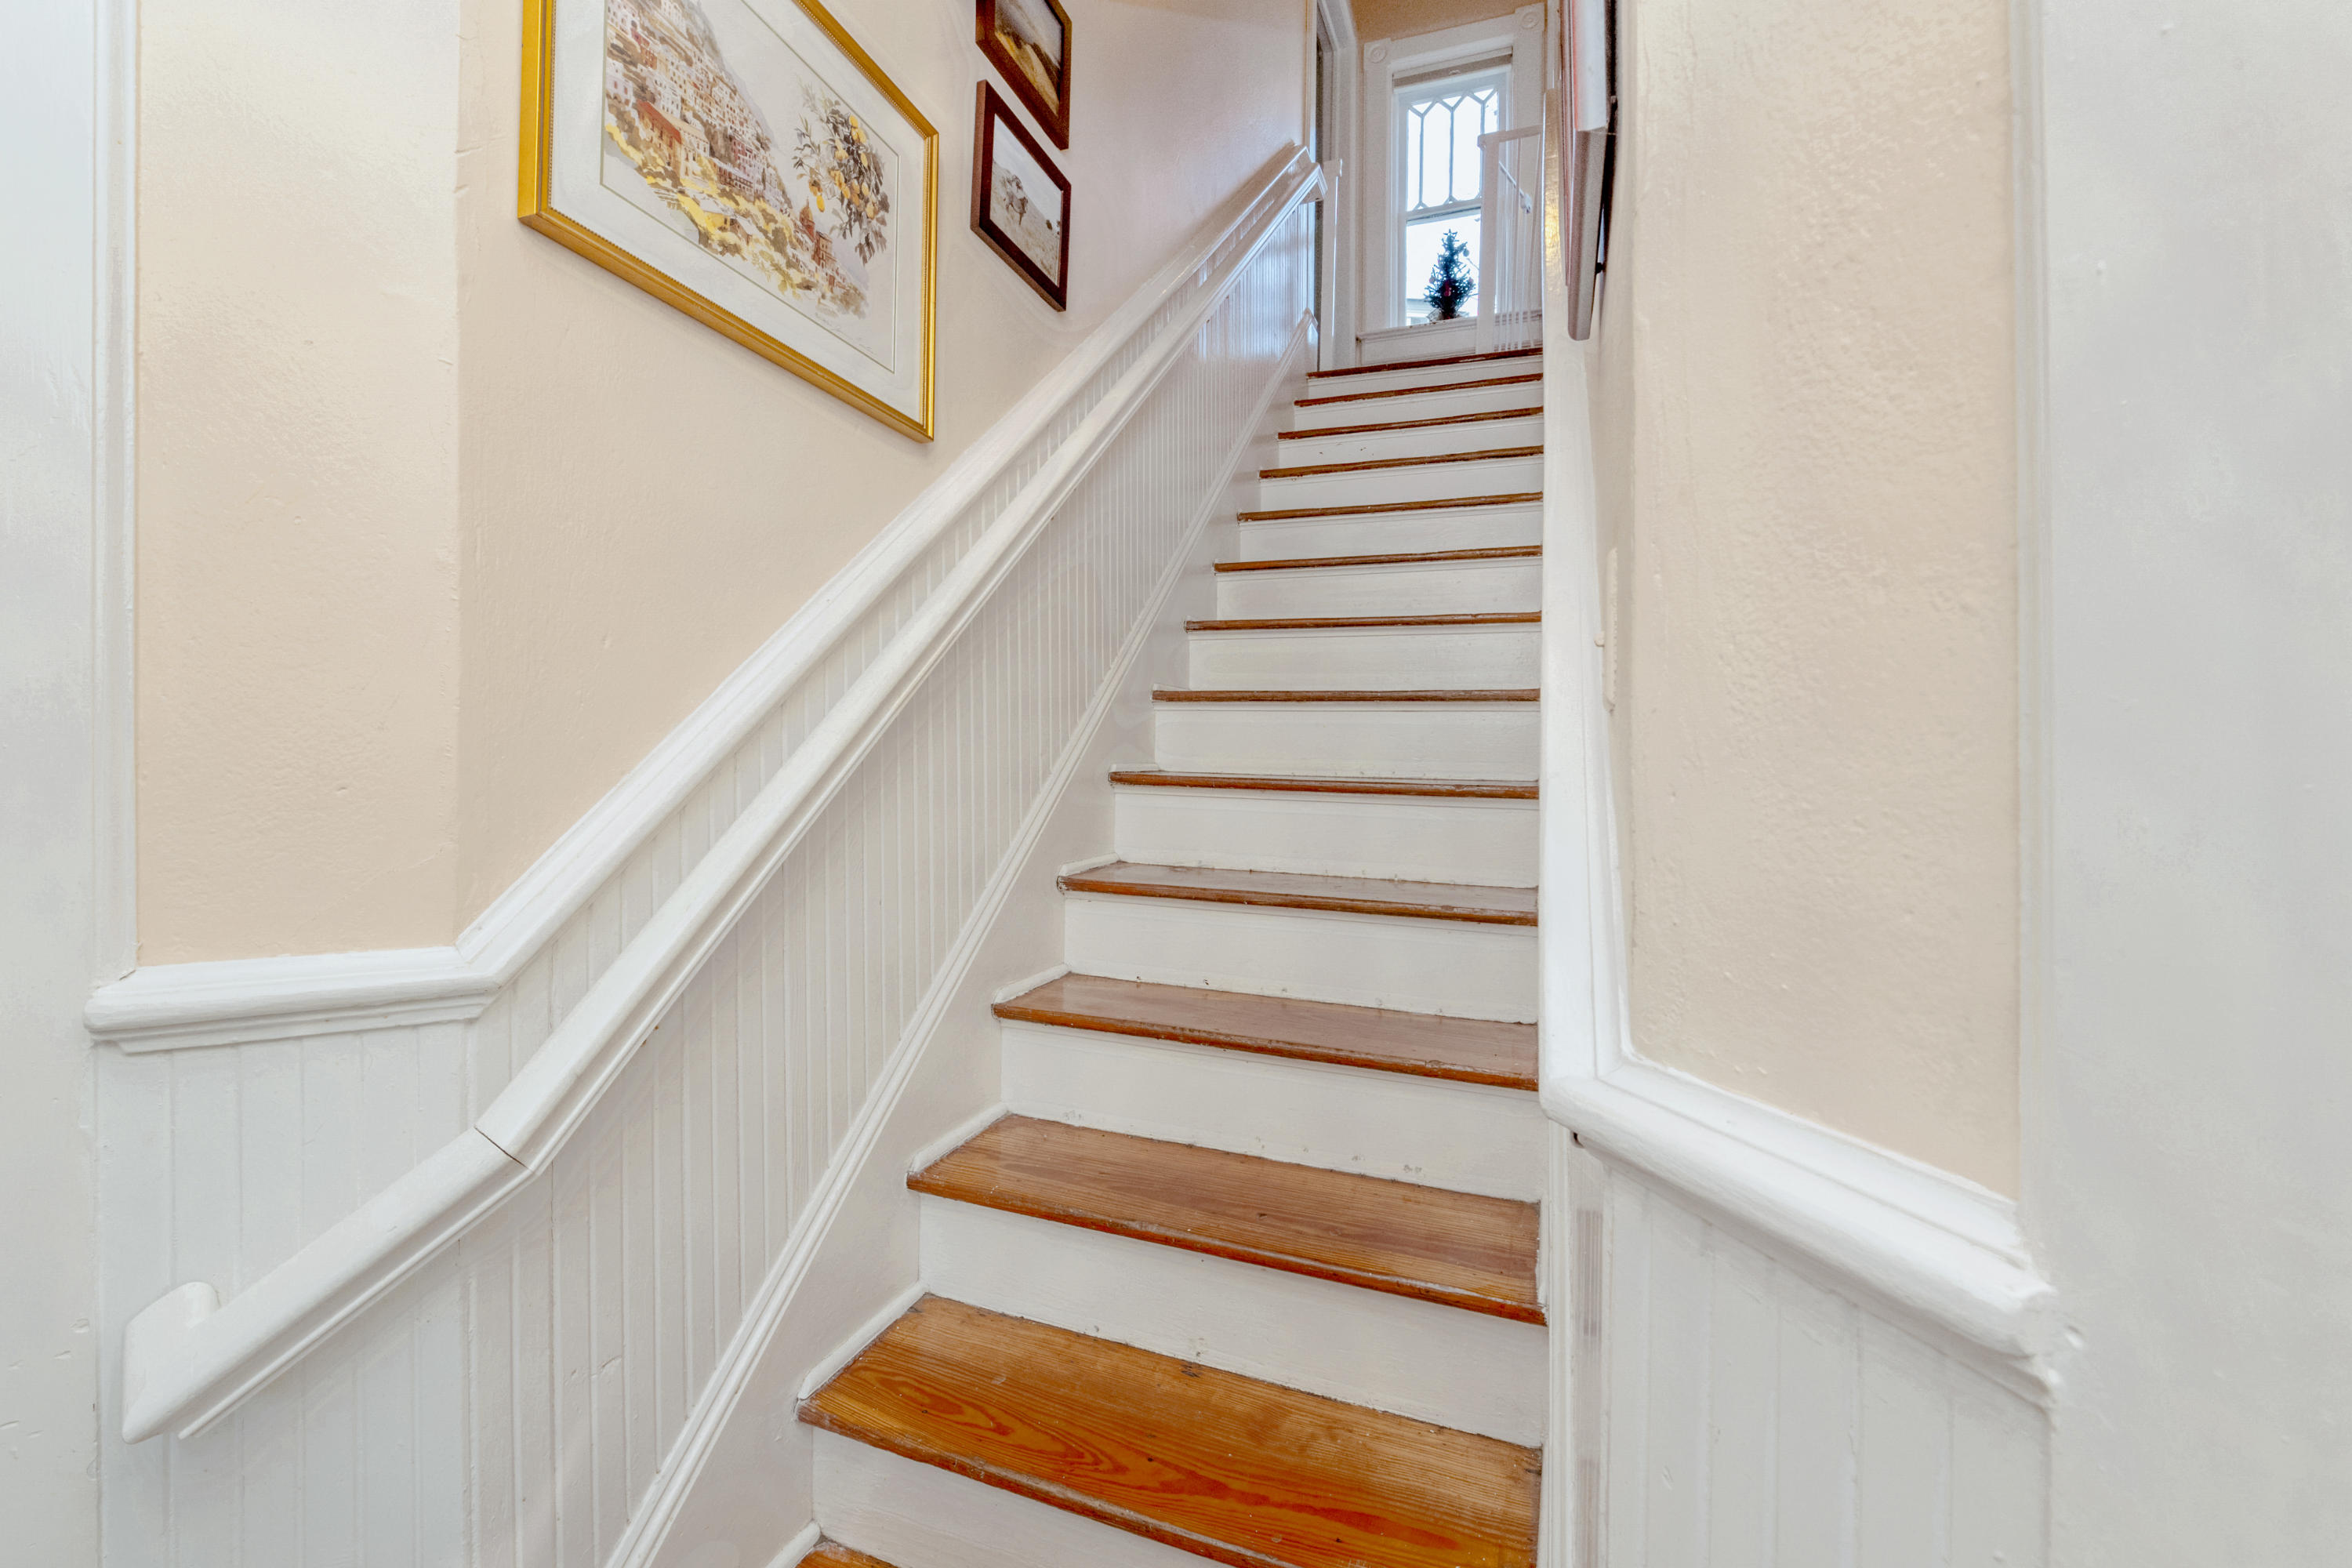 South of Broad Homes For Sale - 4 Weims, Charleston, SC - 10